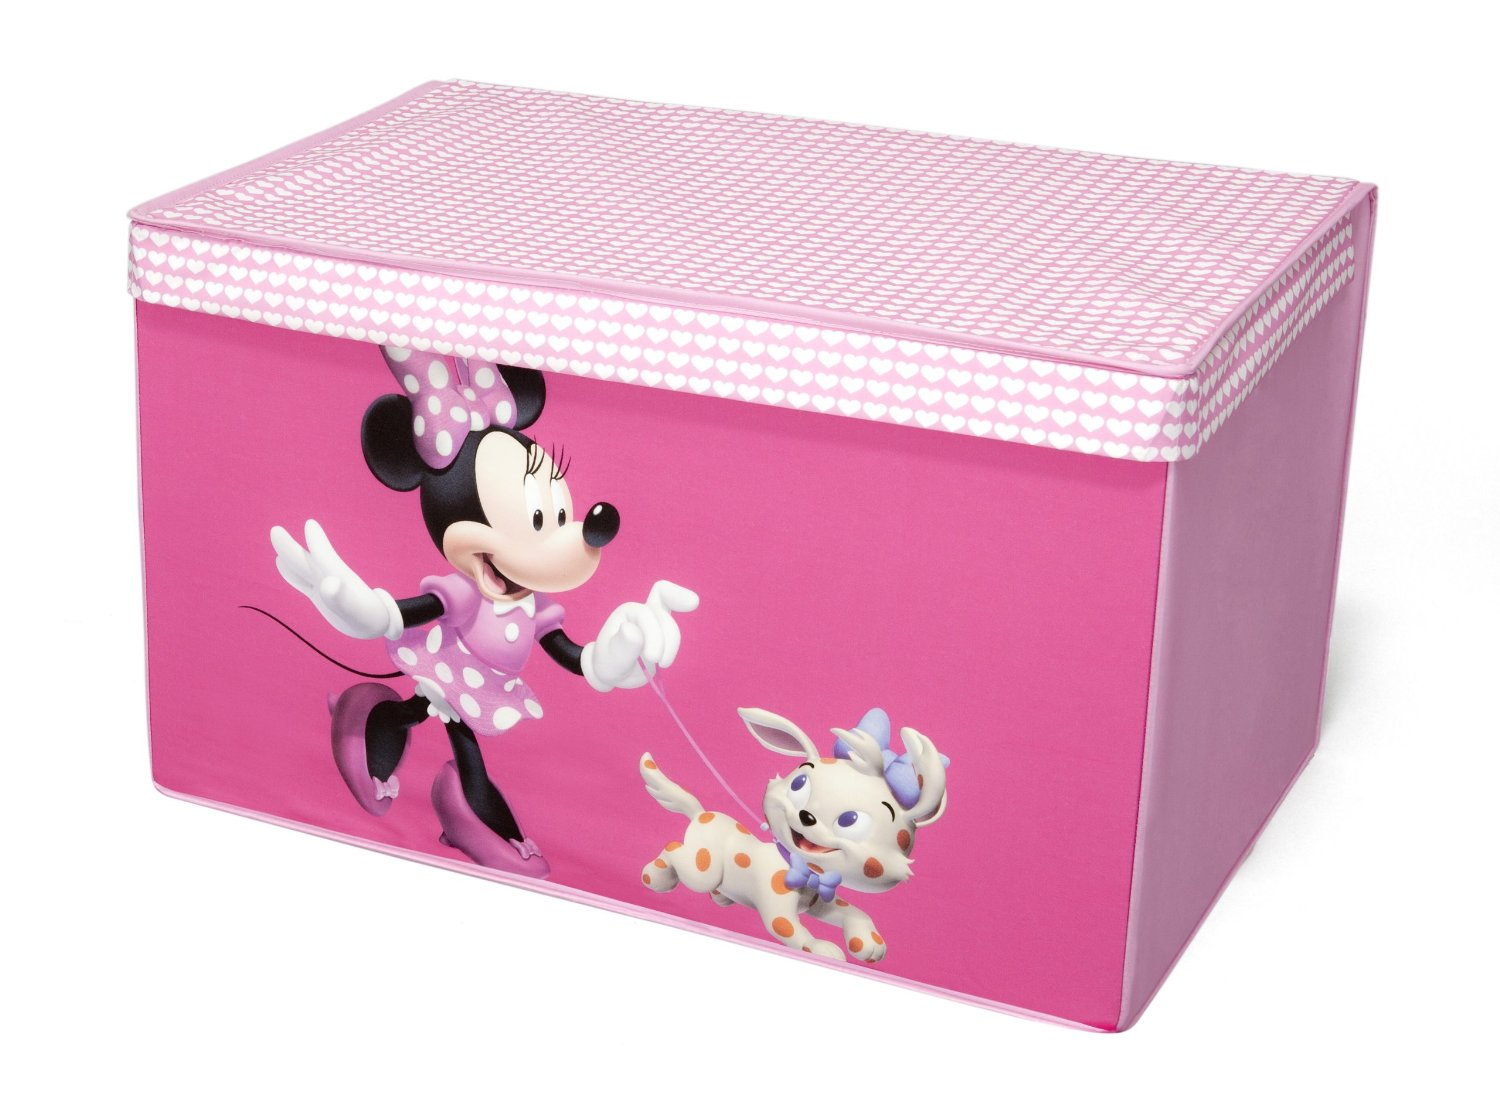 Muebles Guarda Juguetes Baul Minnie Mouse Baules Minnie Baules Minnie Mouse